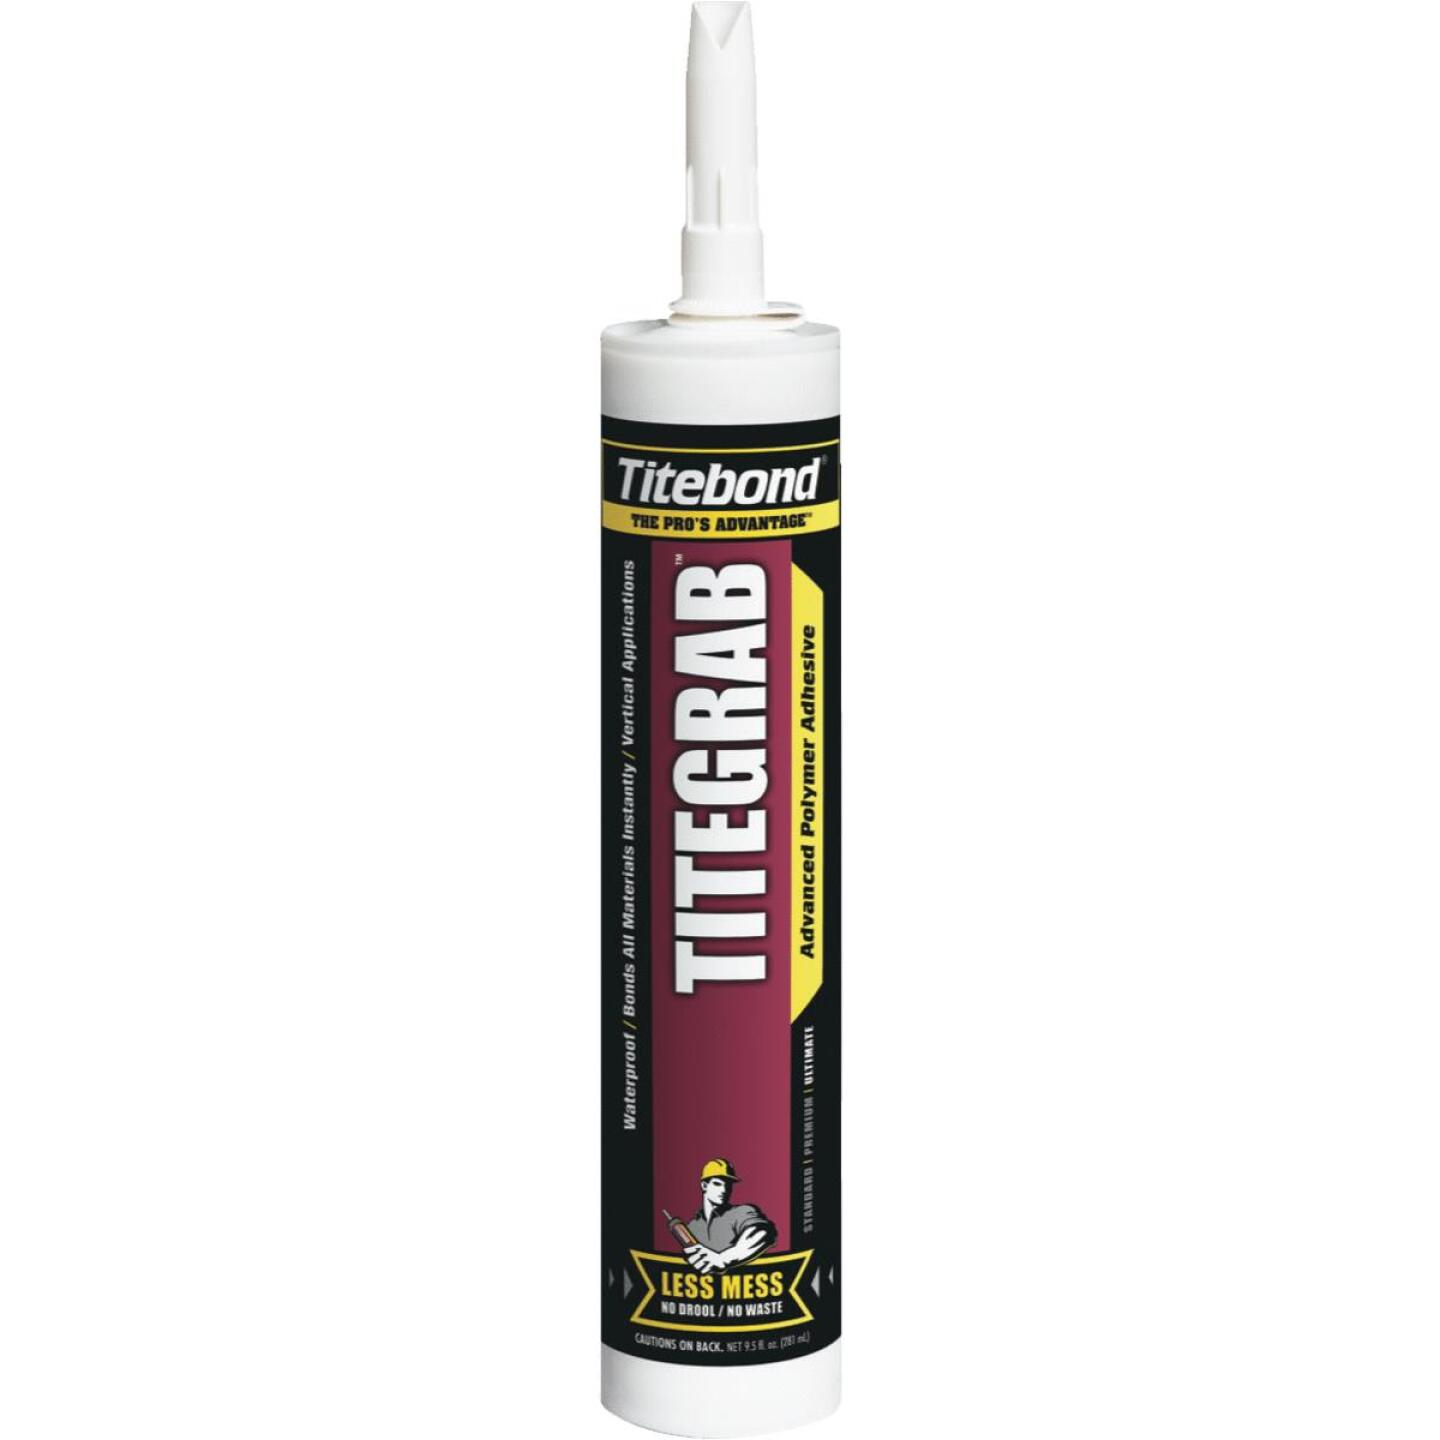 Titebond TiteGrab 9.5 Oz. Advanced Polymer Construction Adhesive Image 1